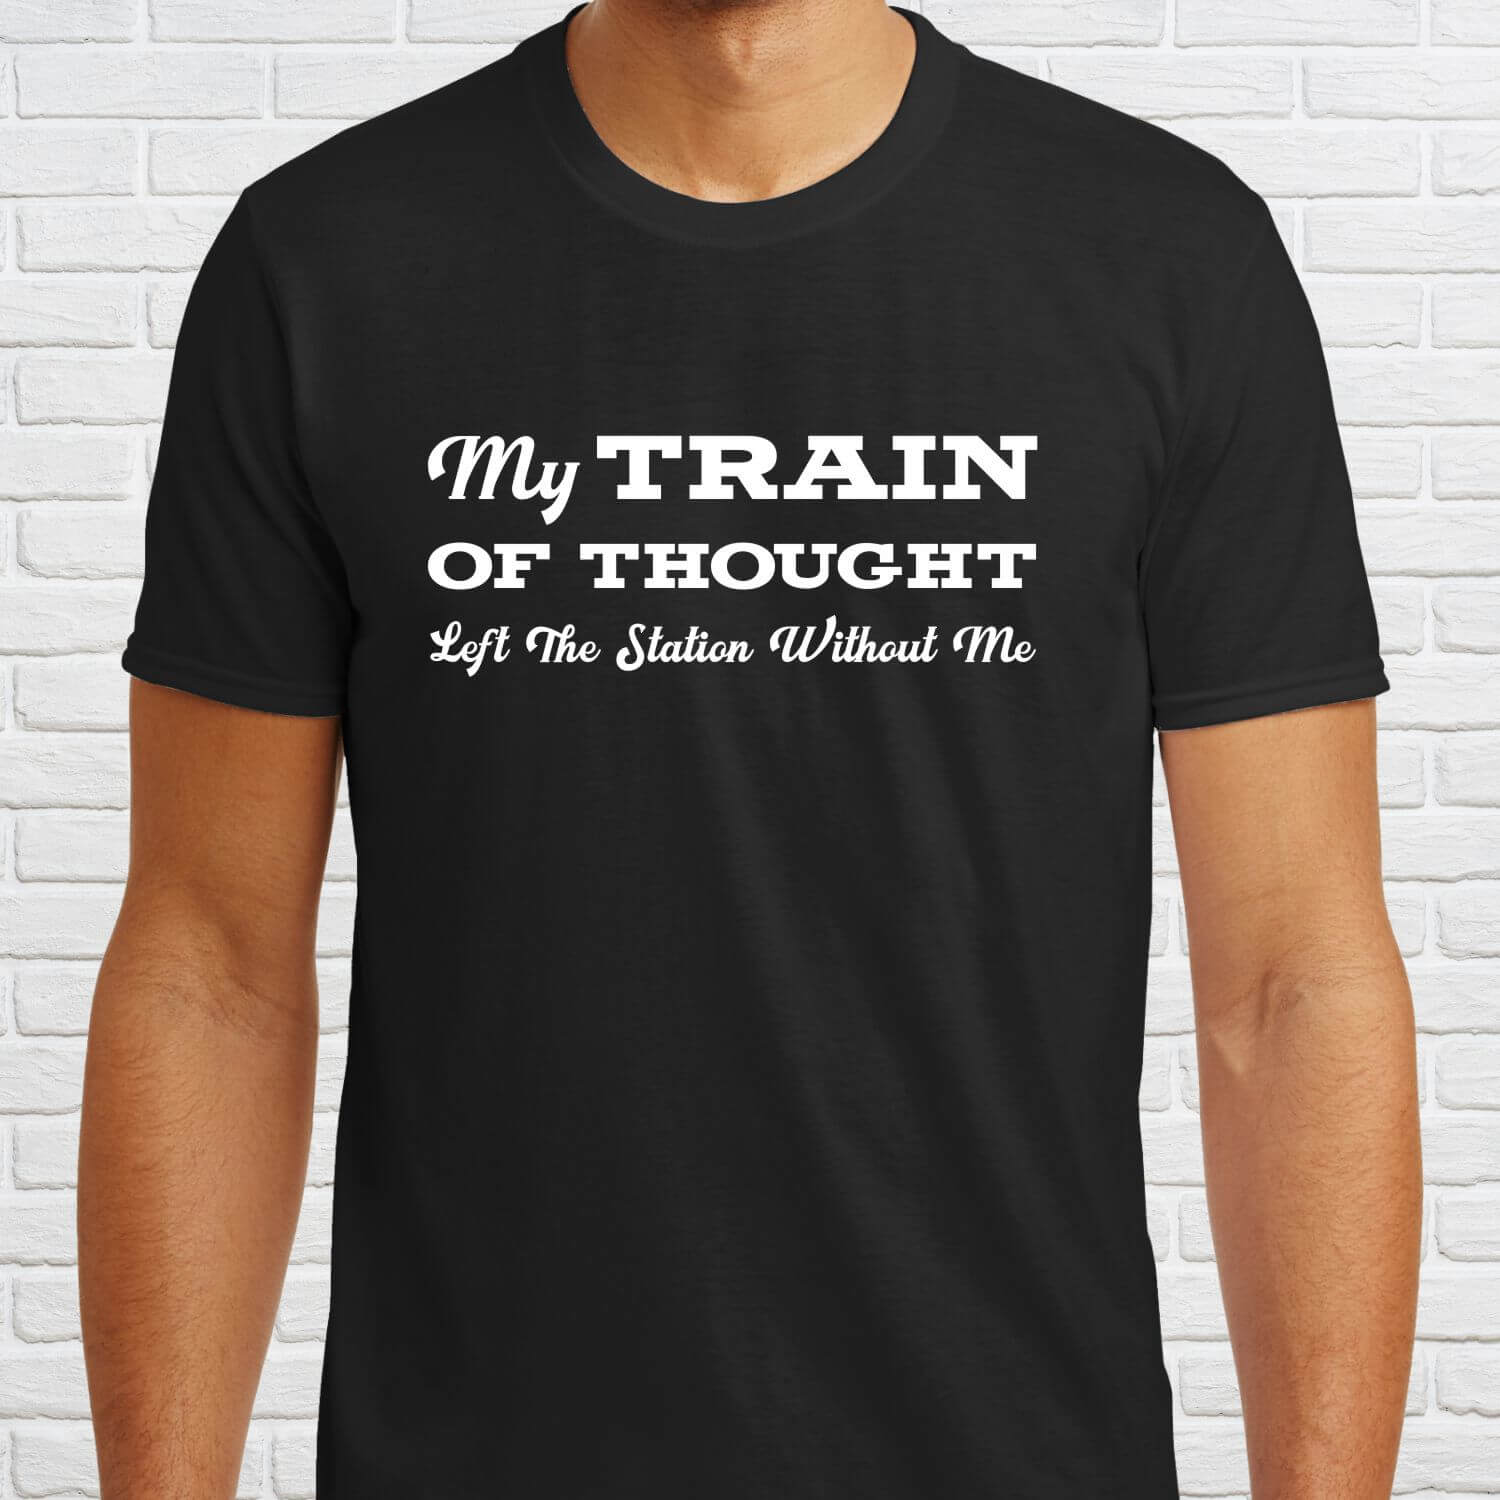 My-Train-Thought-Left-Station-Graphic-Tee-Shirt